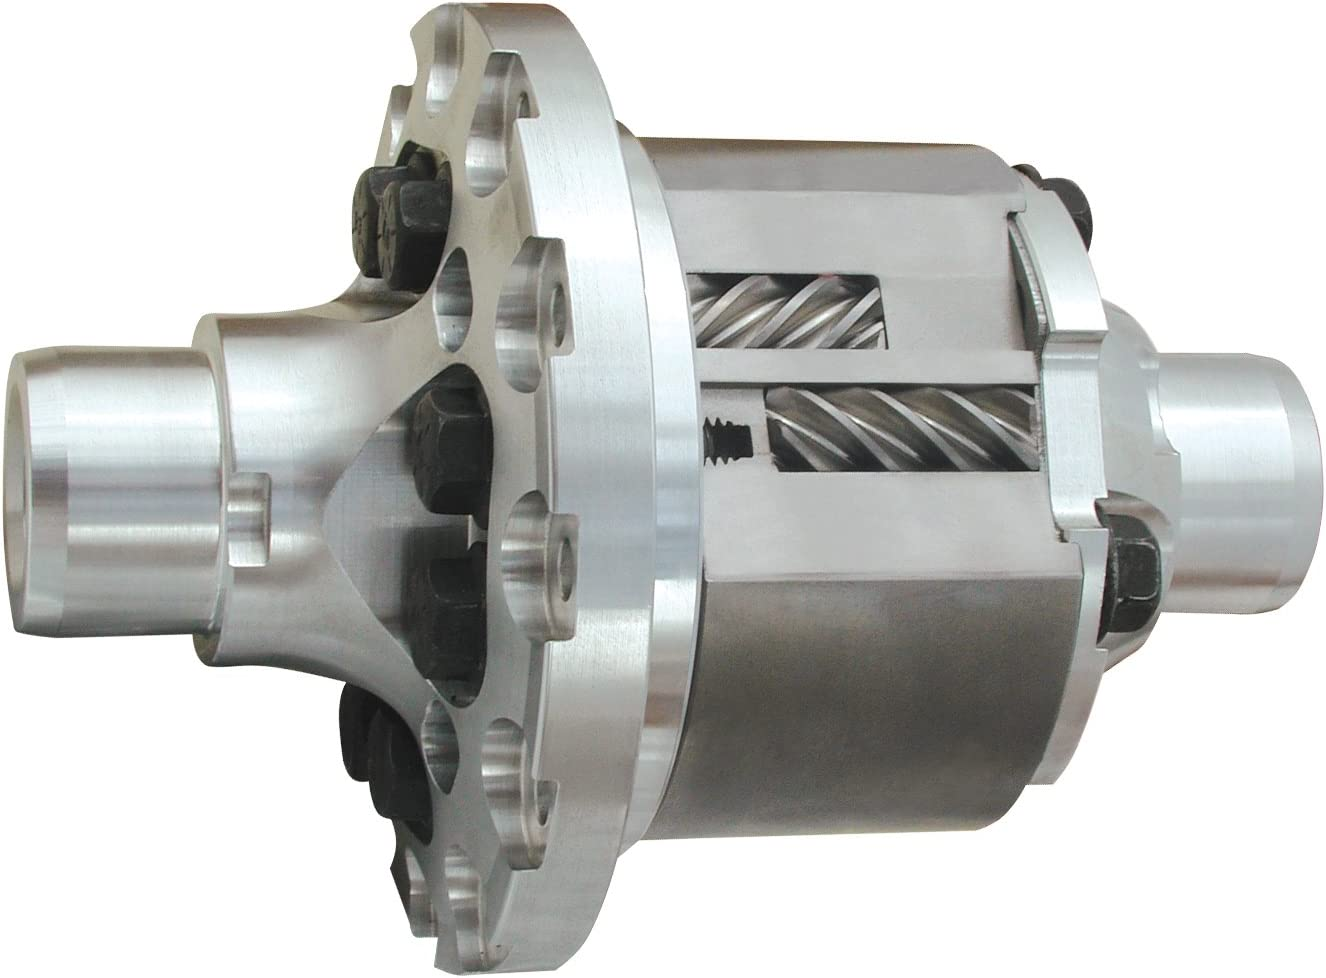 Detroit Locker 913A315 Trutrac Differential Recommended 30 Spline for G with Popular brand in the world